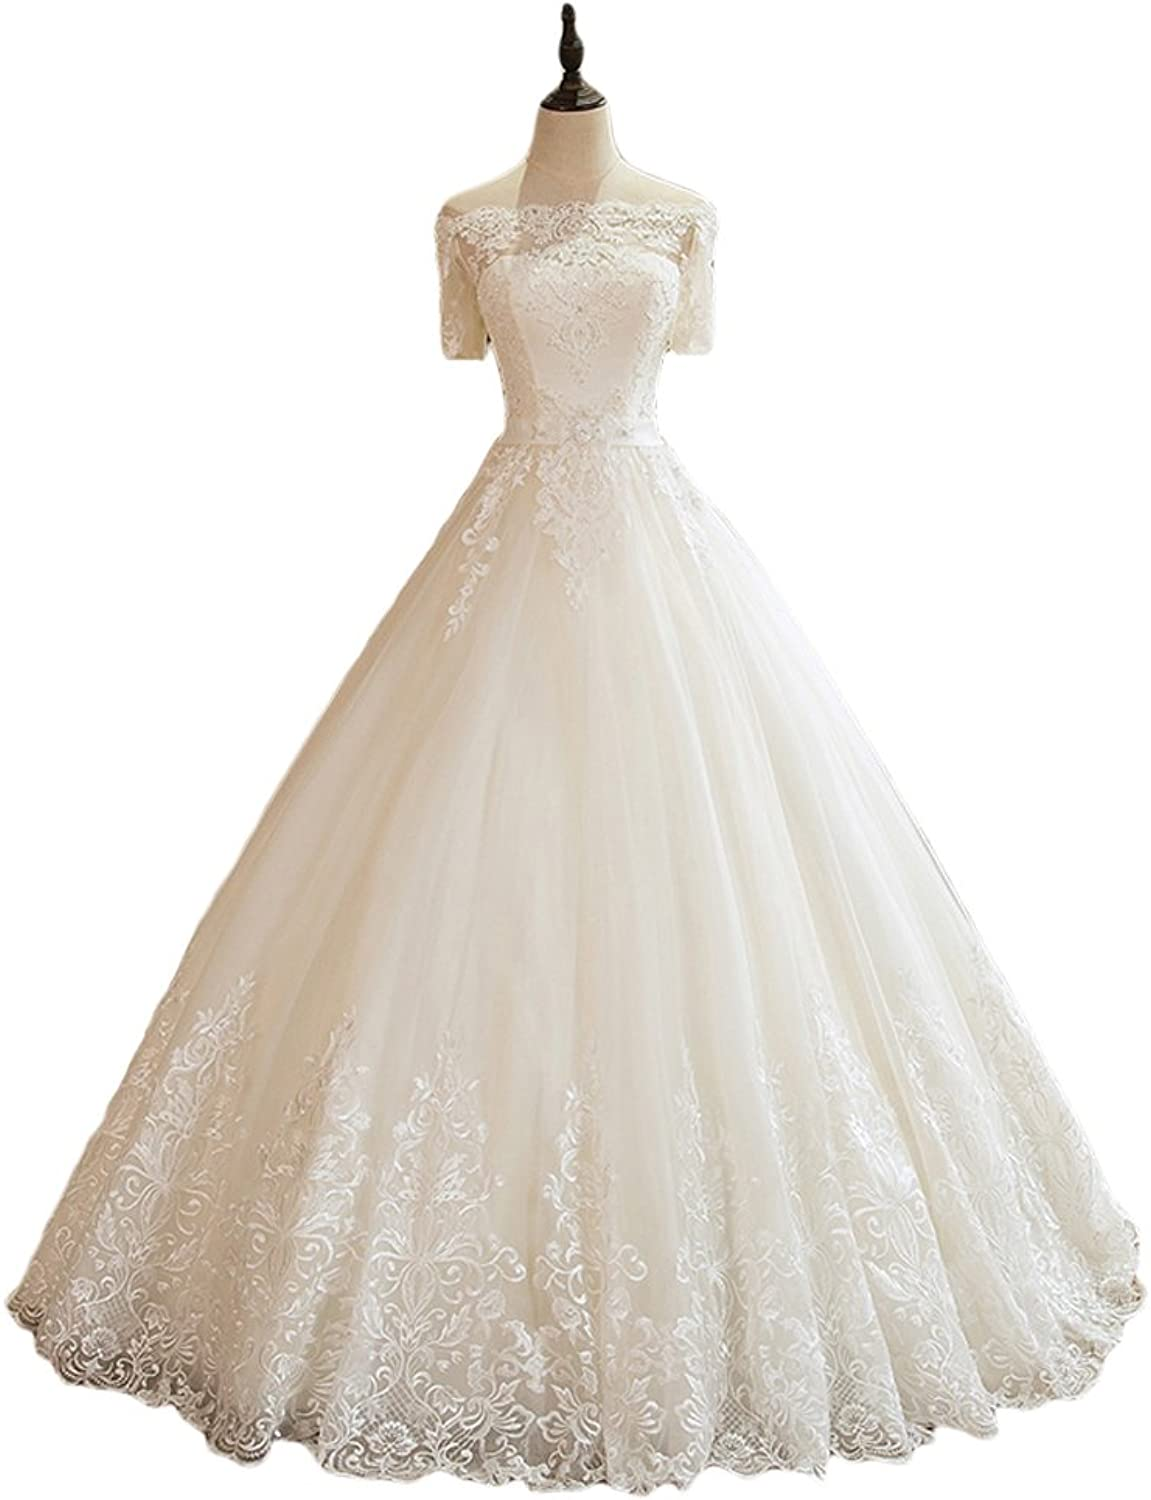 Liyuke Women's Off Shoulder Wedding Dresses Ball Gowns Lace Appliques Bridal Dress with Sleeve